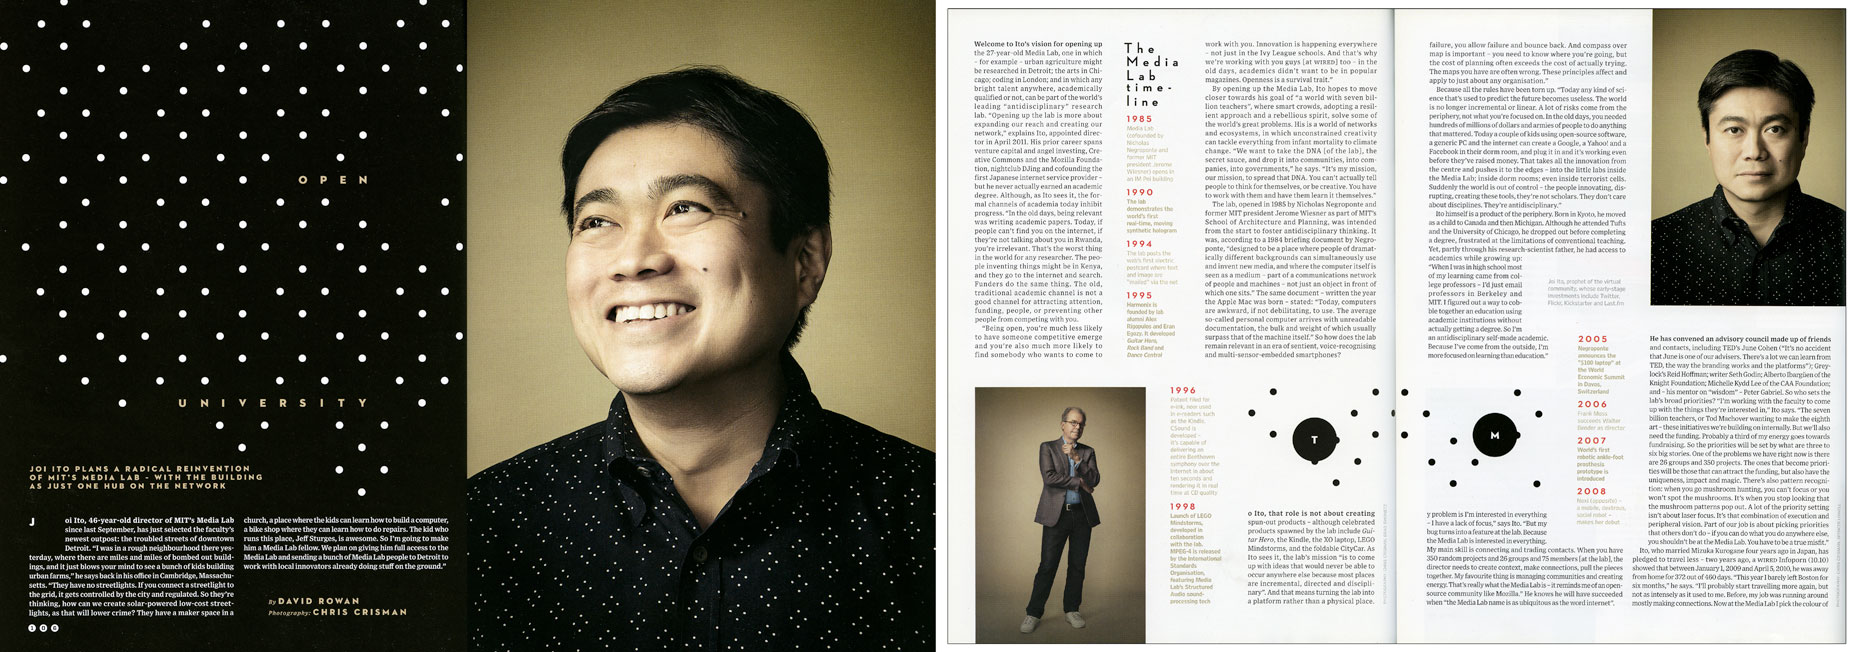 WIRED UK: The MIT MEDIA LAB. November 2012 issue  - SPREAD 3 and 4: Joi Ito